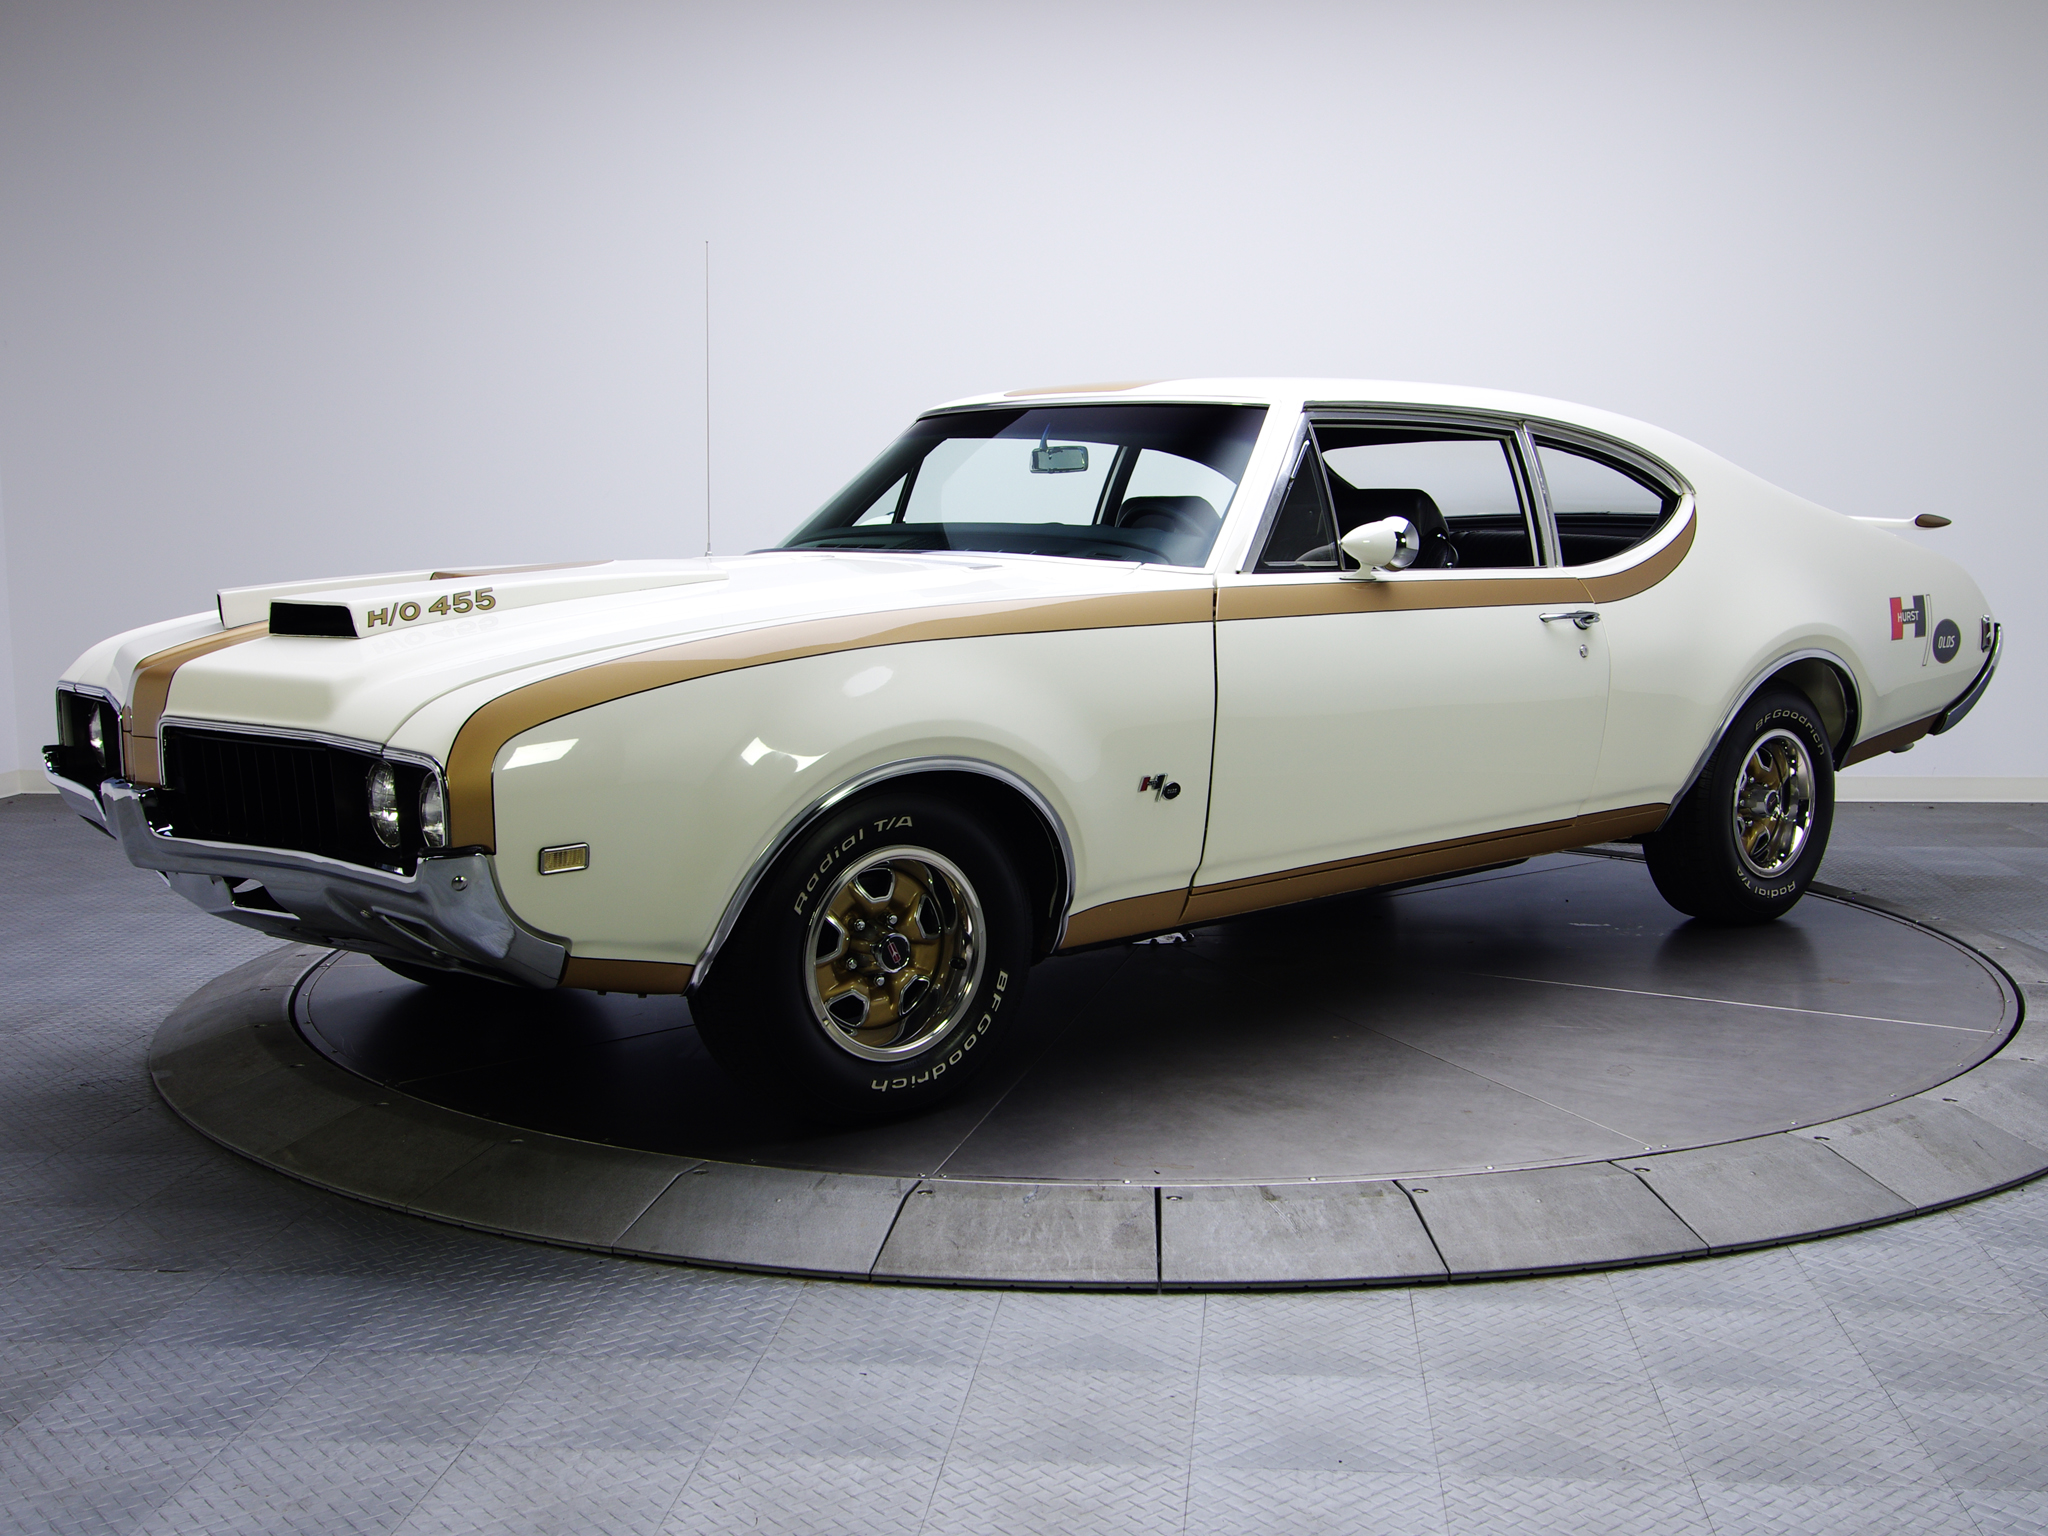 1969 Hurst-Olds 442 Holiday Coupe 4487 455 wallpaper ...